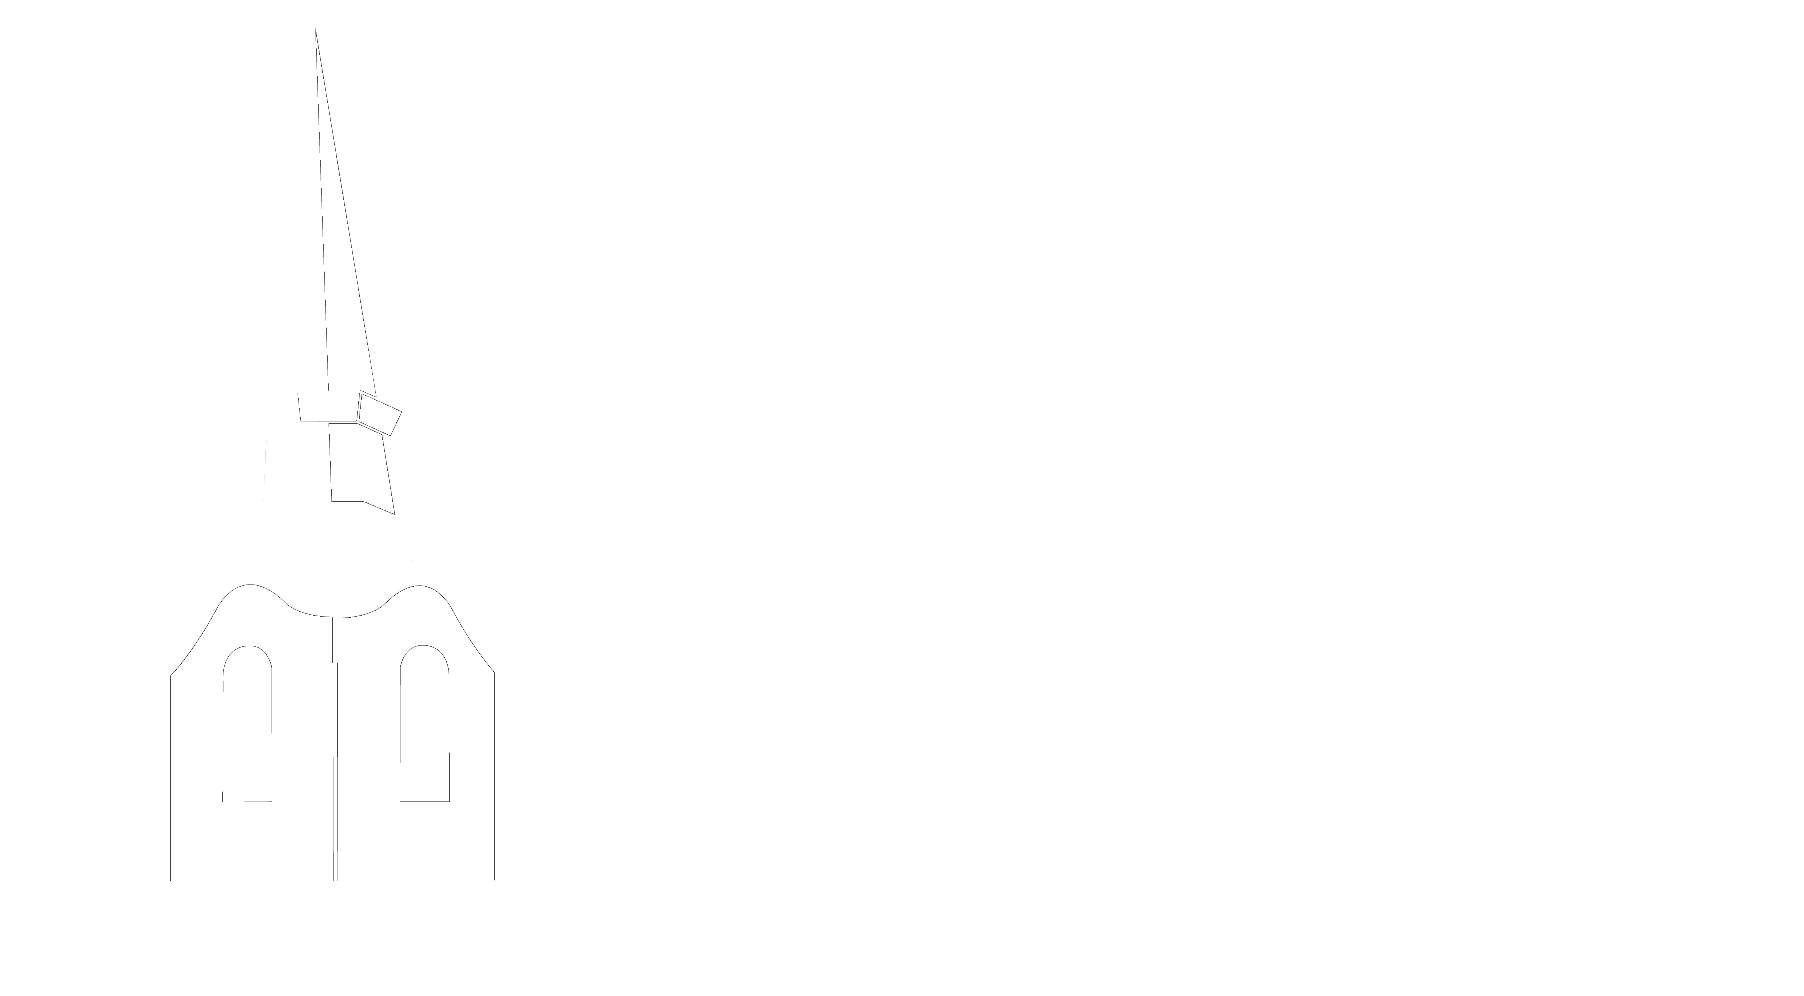 Adams Center Baptist Church